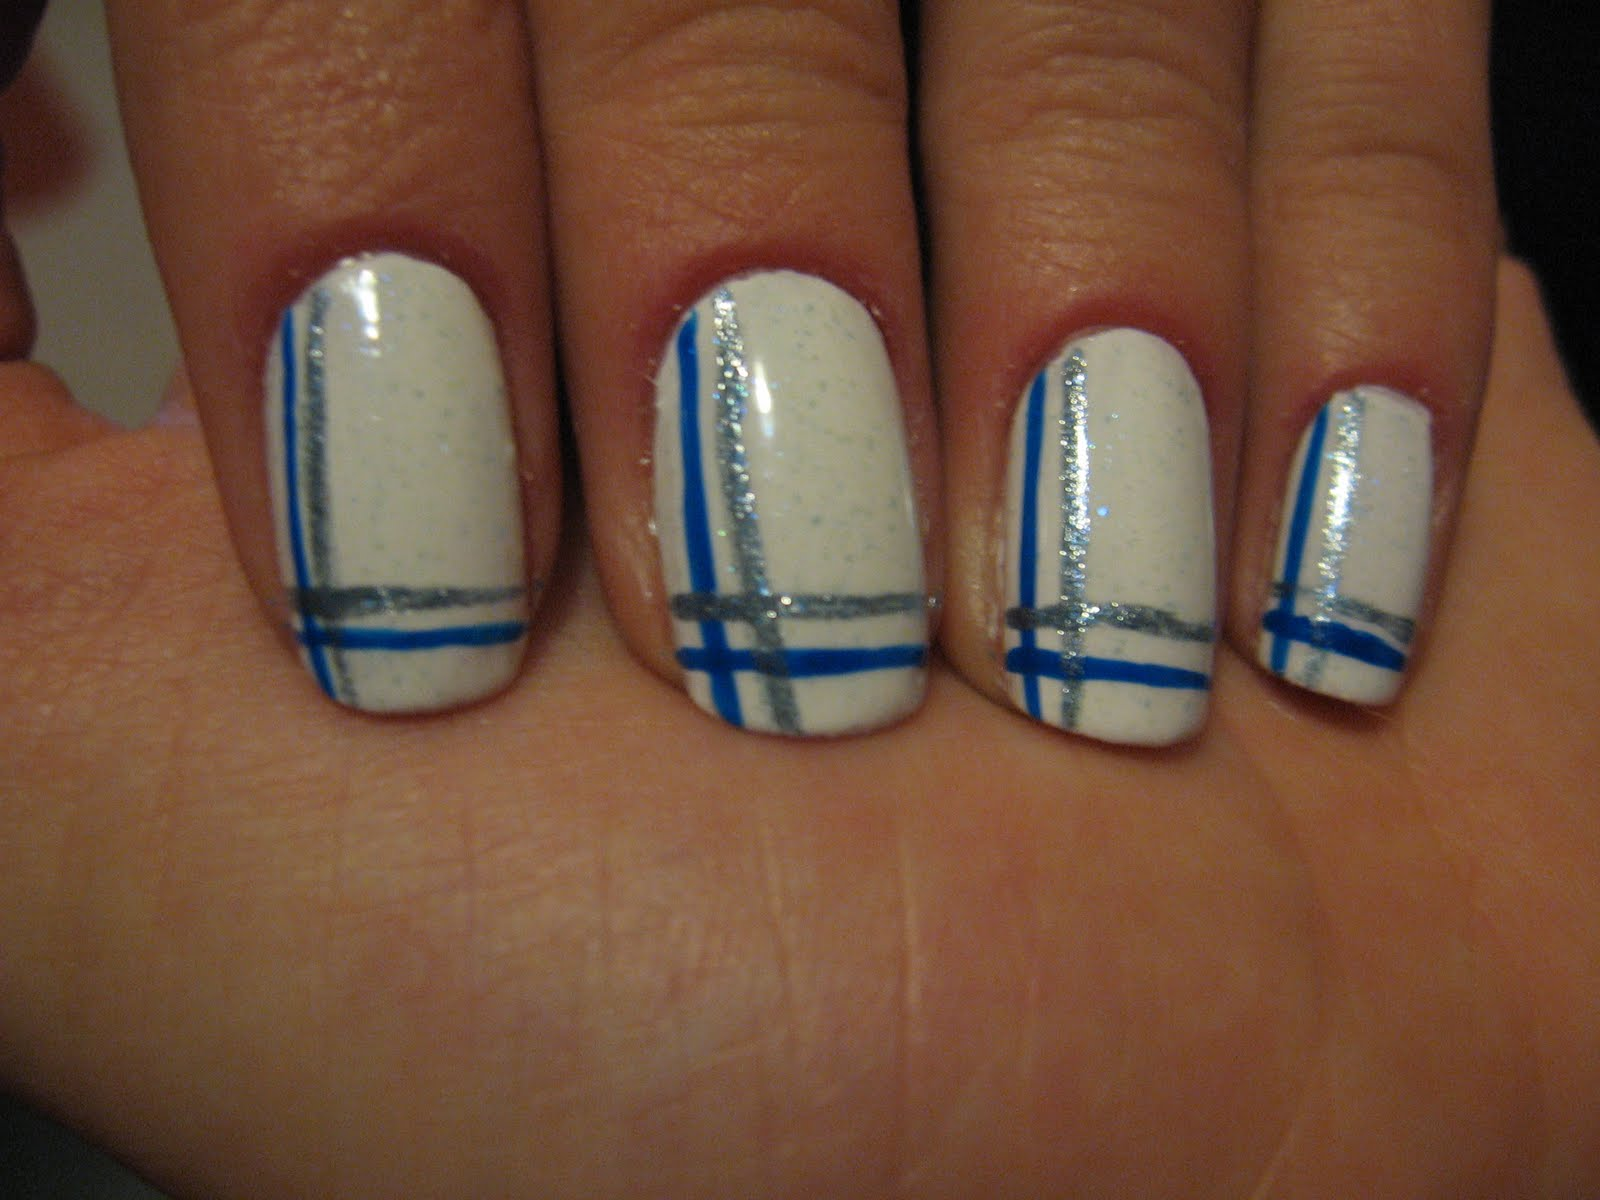 Homemade nails: White nails with blue lines